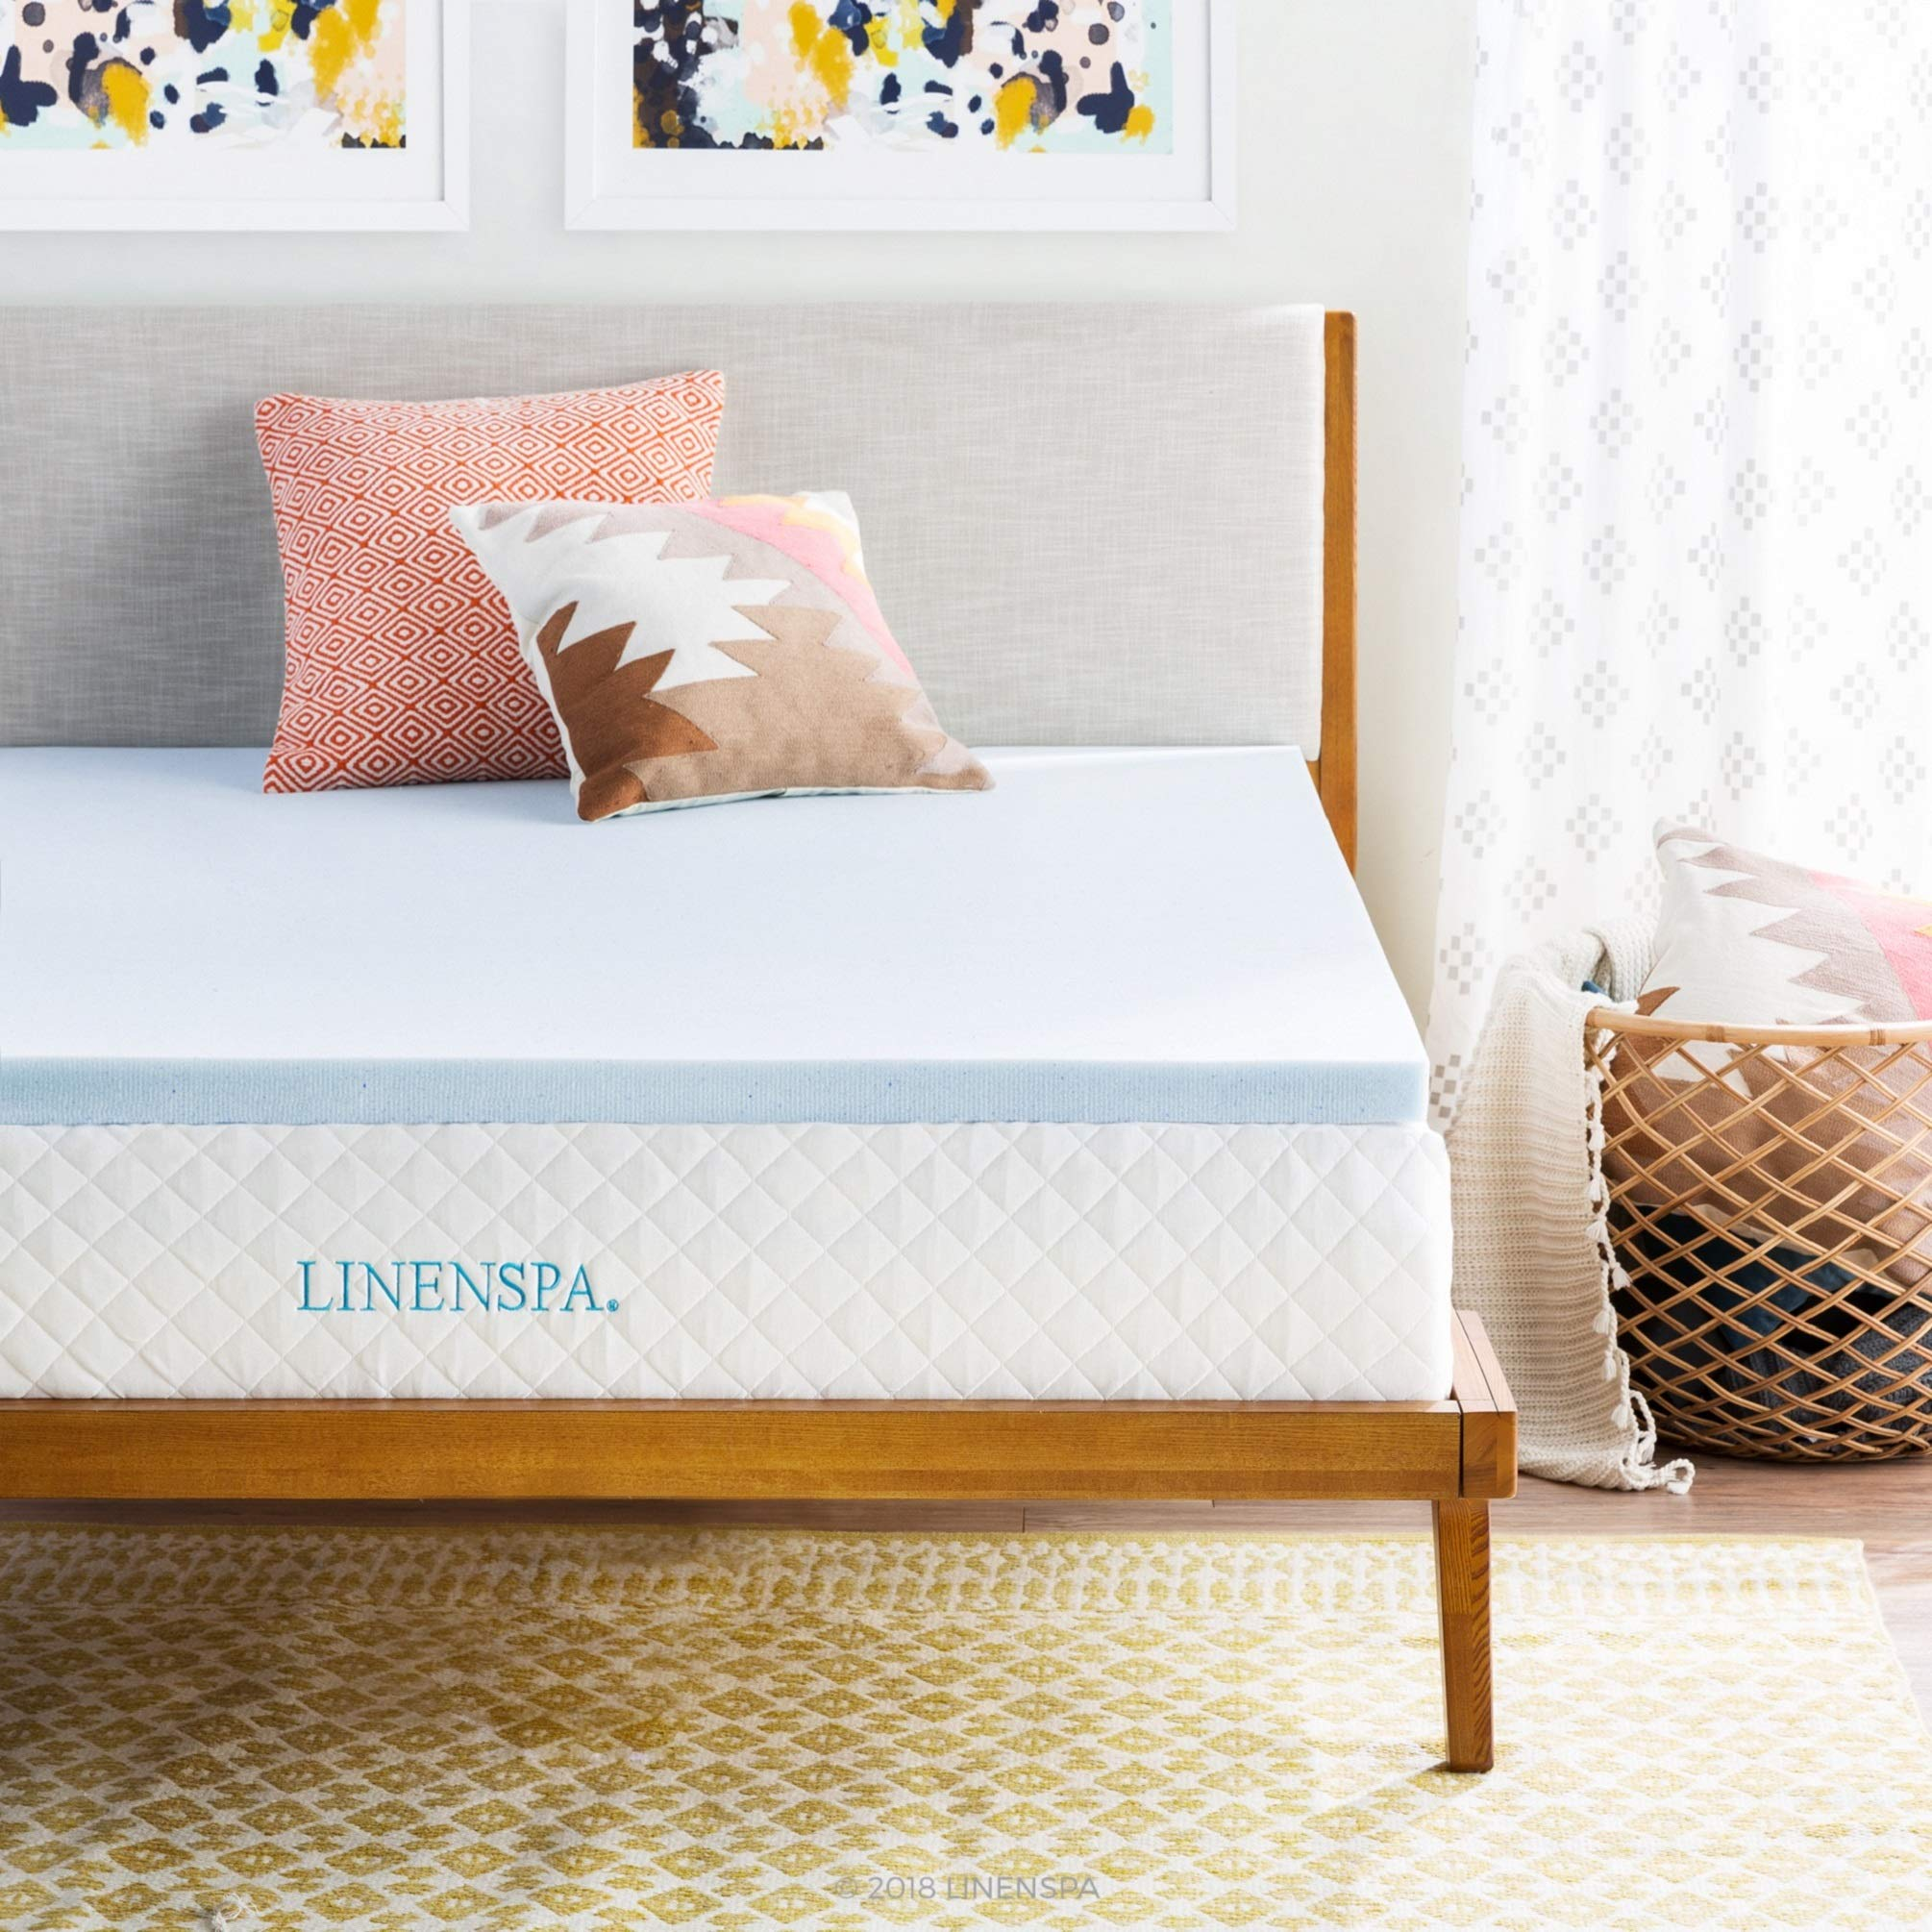 8a149b8545 Linenspa 2 Inch Gel Infused Memory Foam Mattress Topper - Full Size product  image